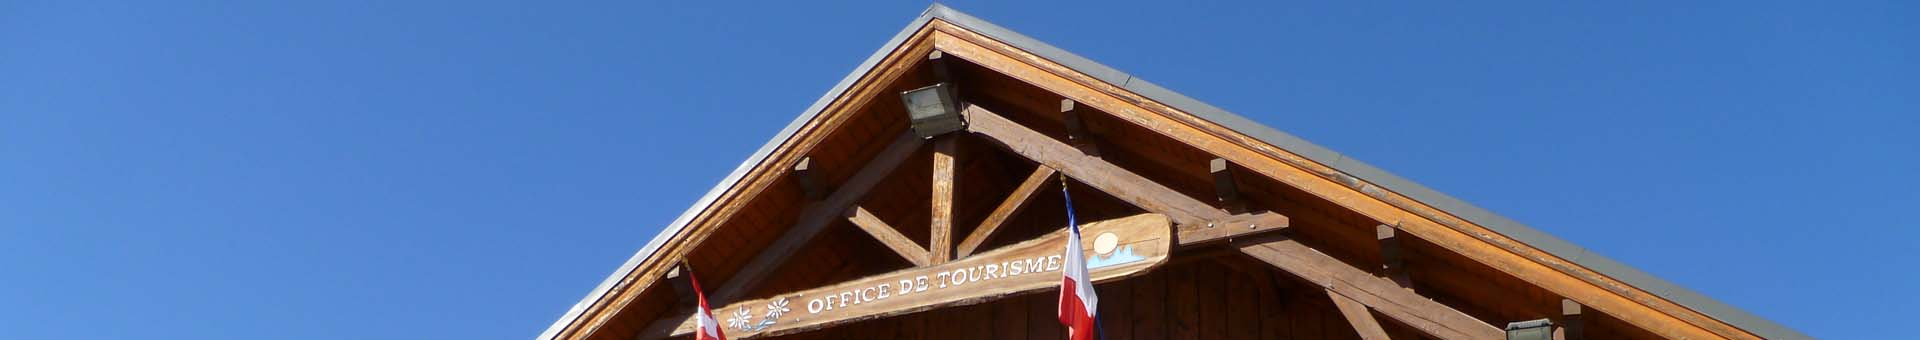 Office de Tourisme Saint Jean d'Arves